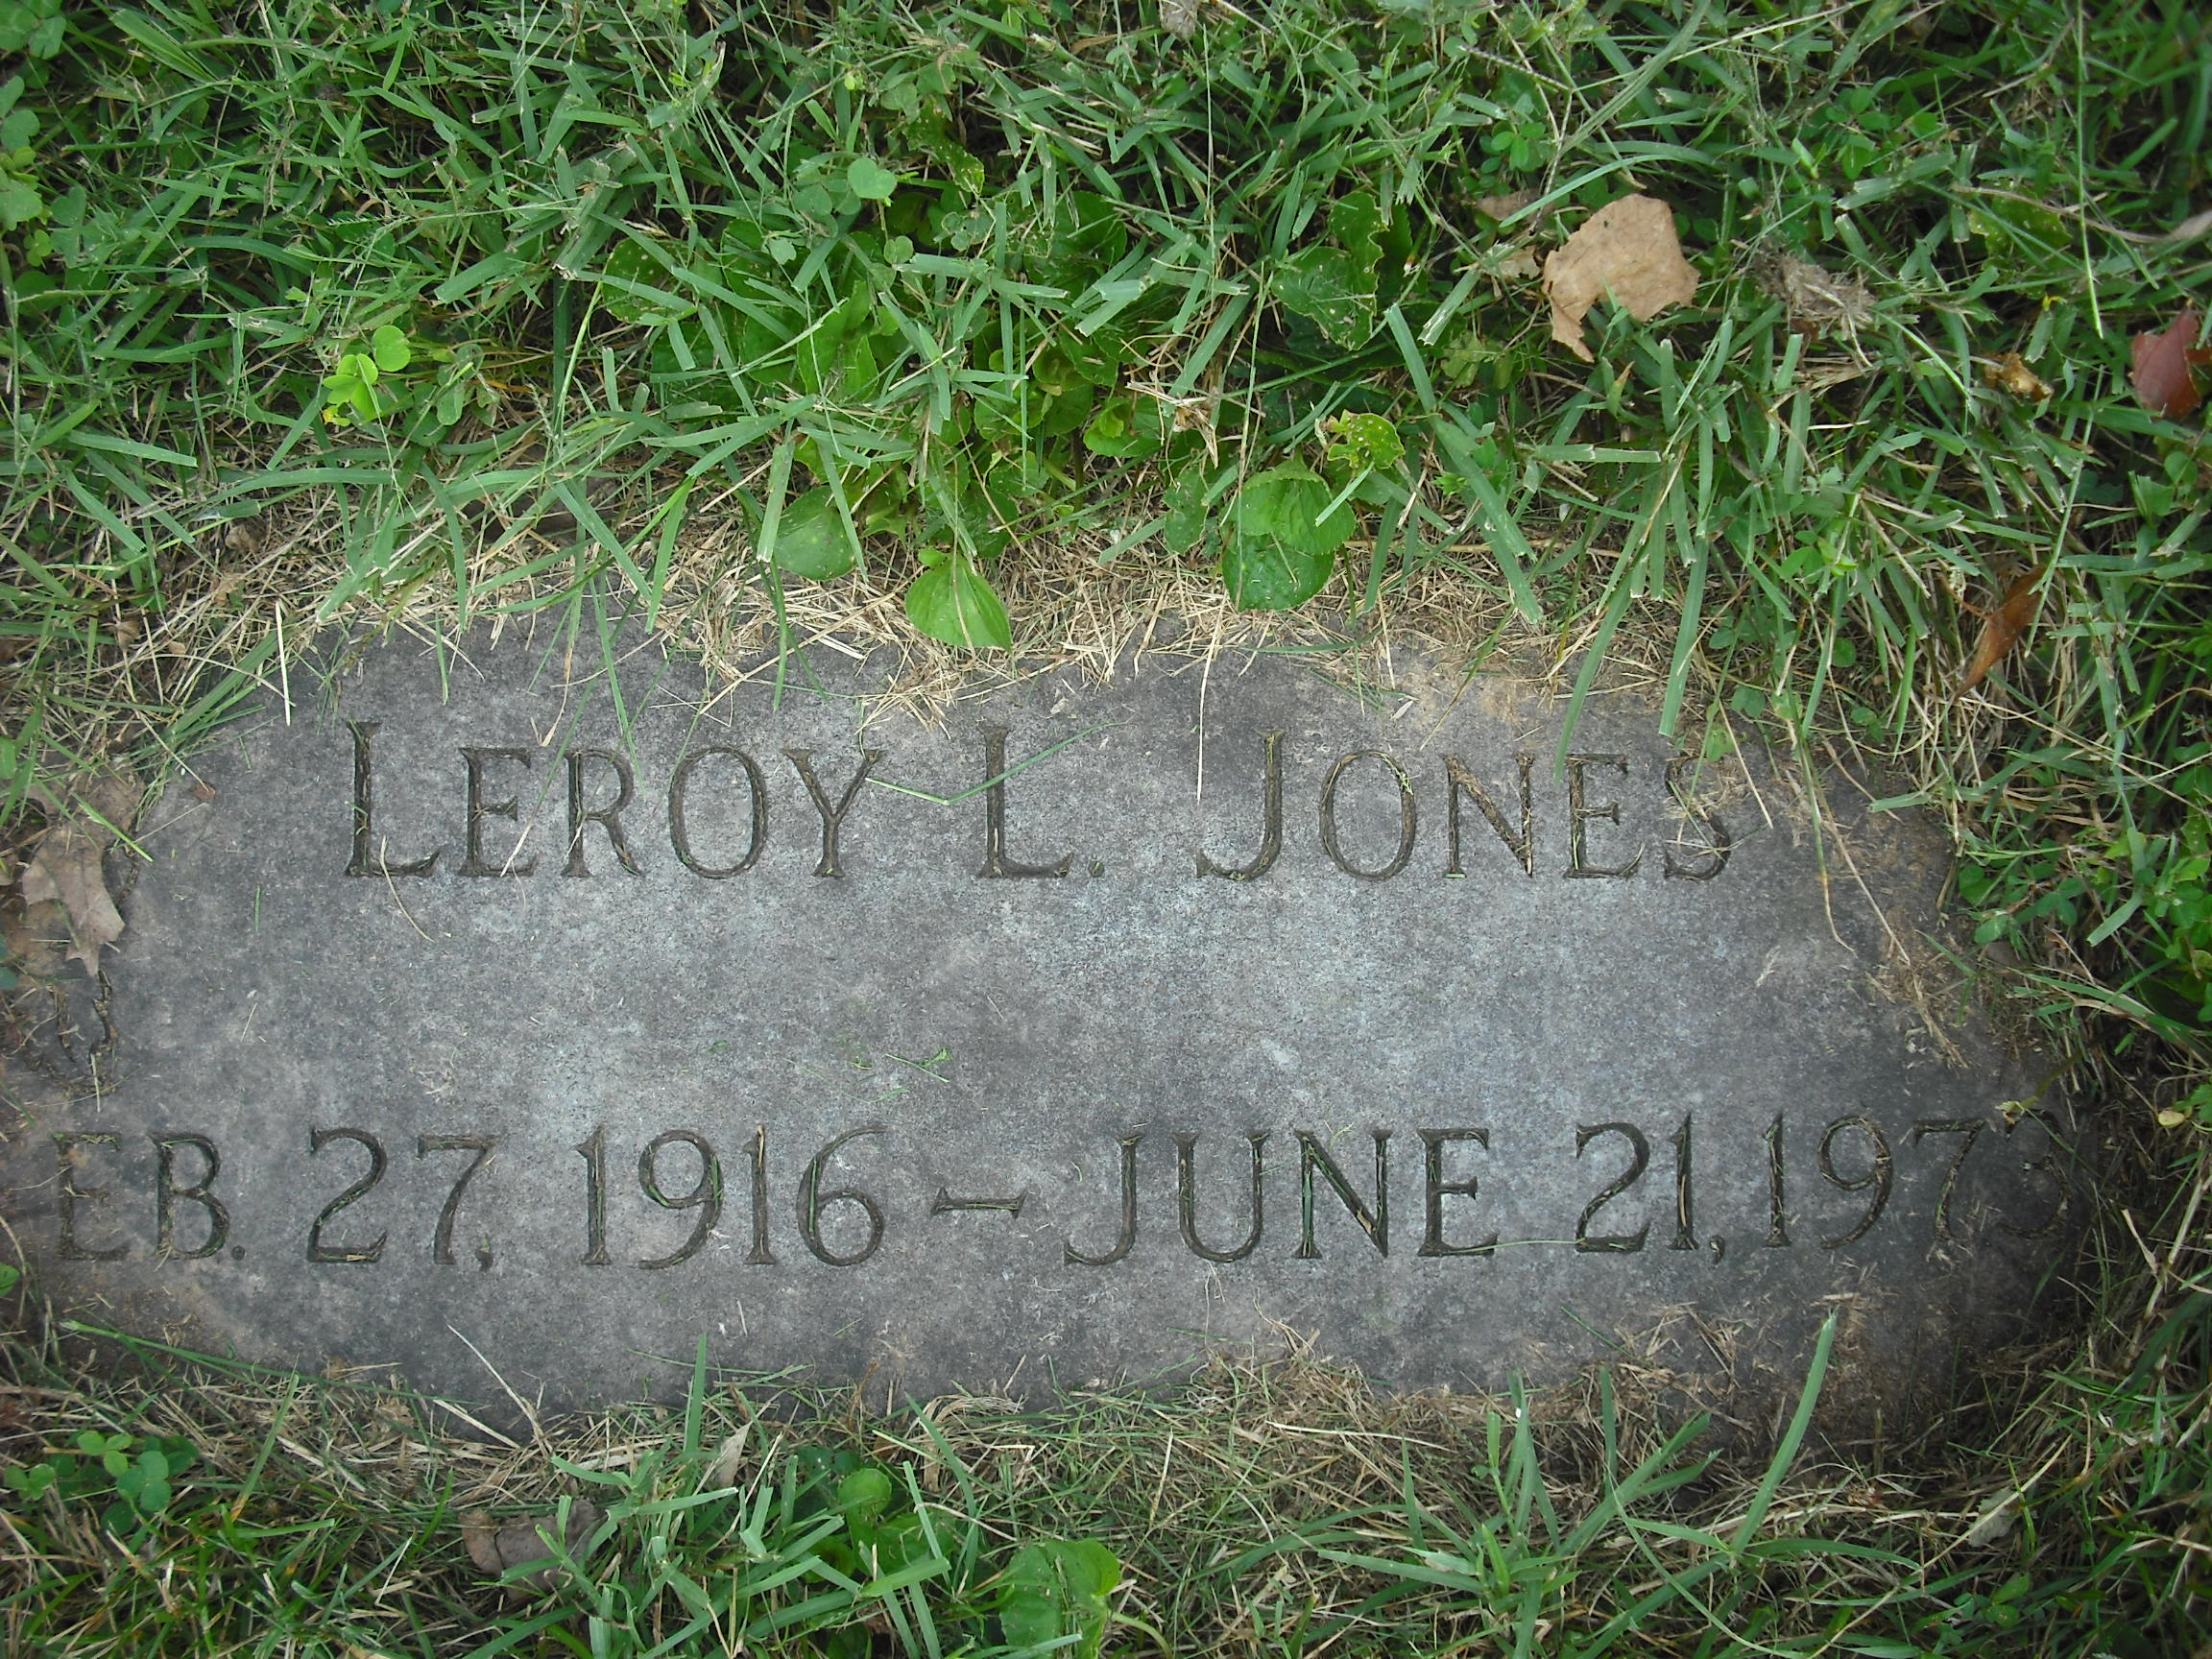 Leroy L. Jones